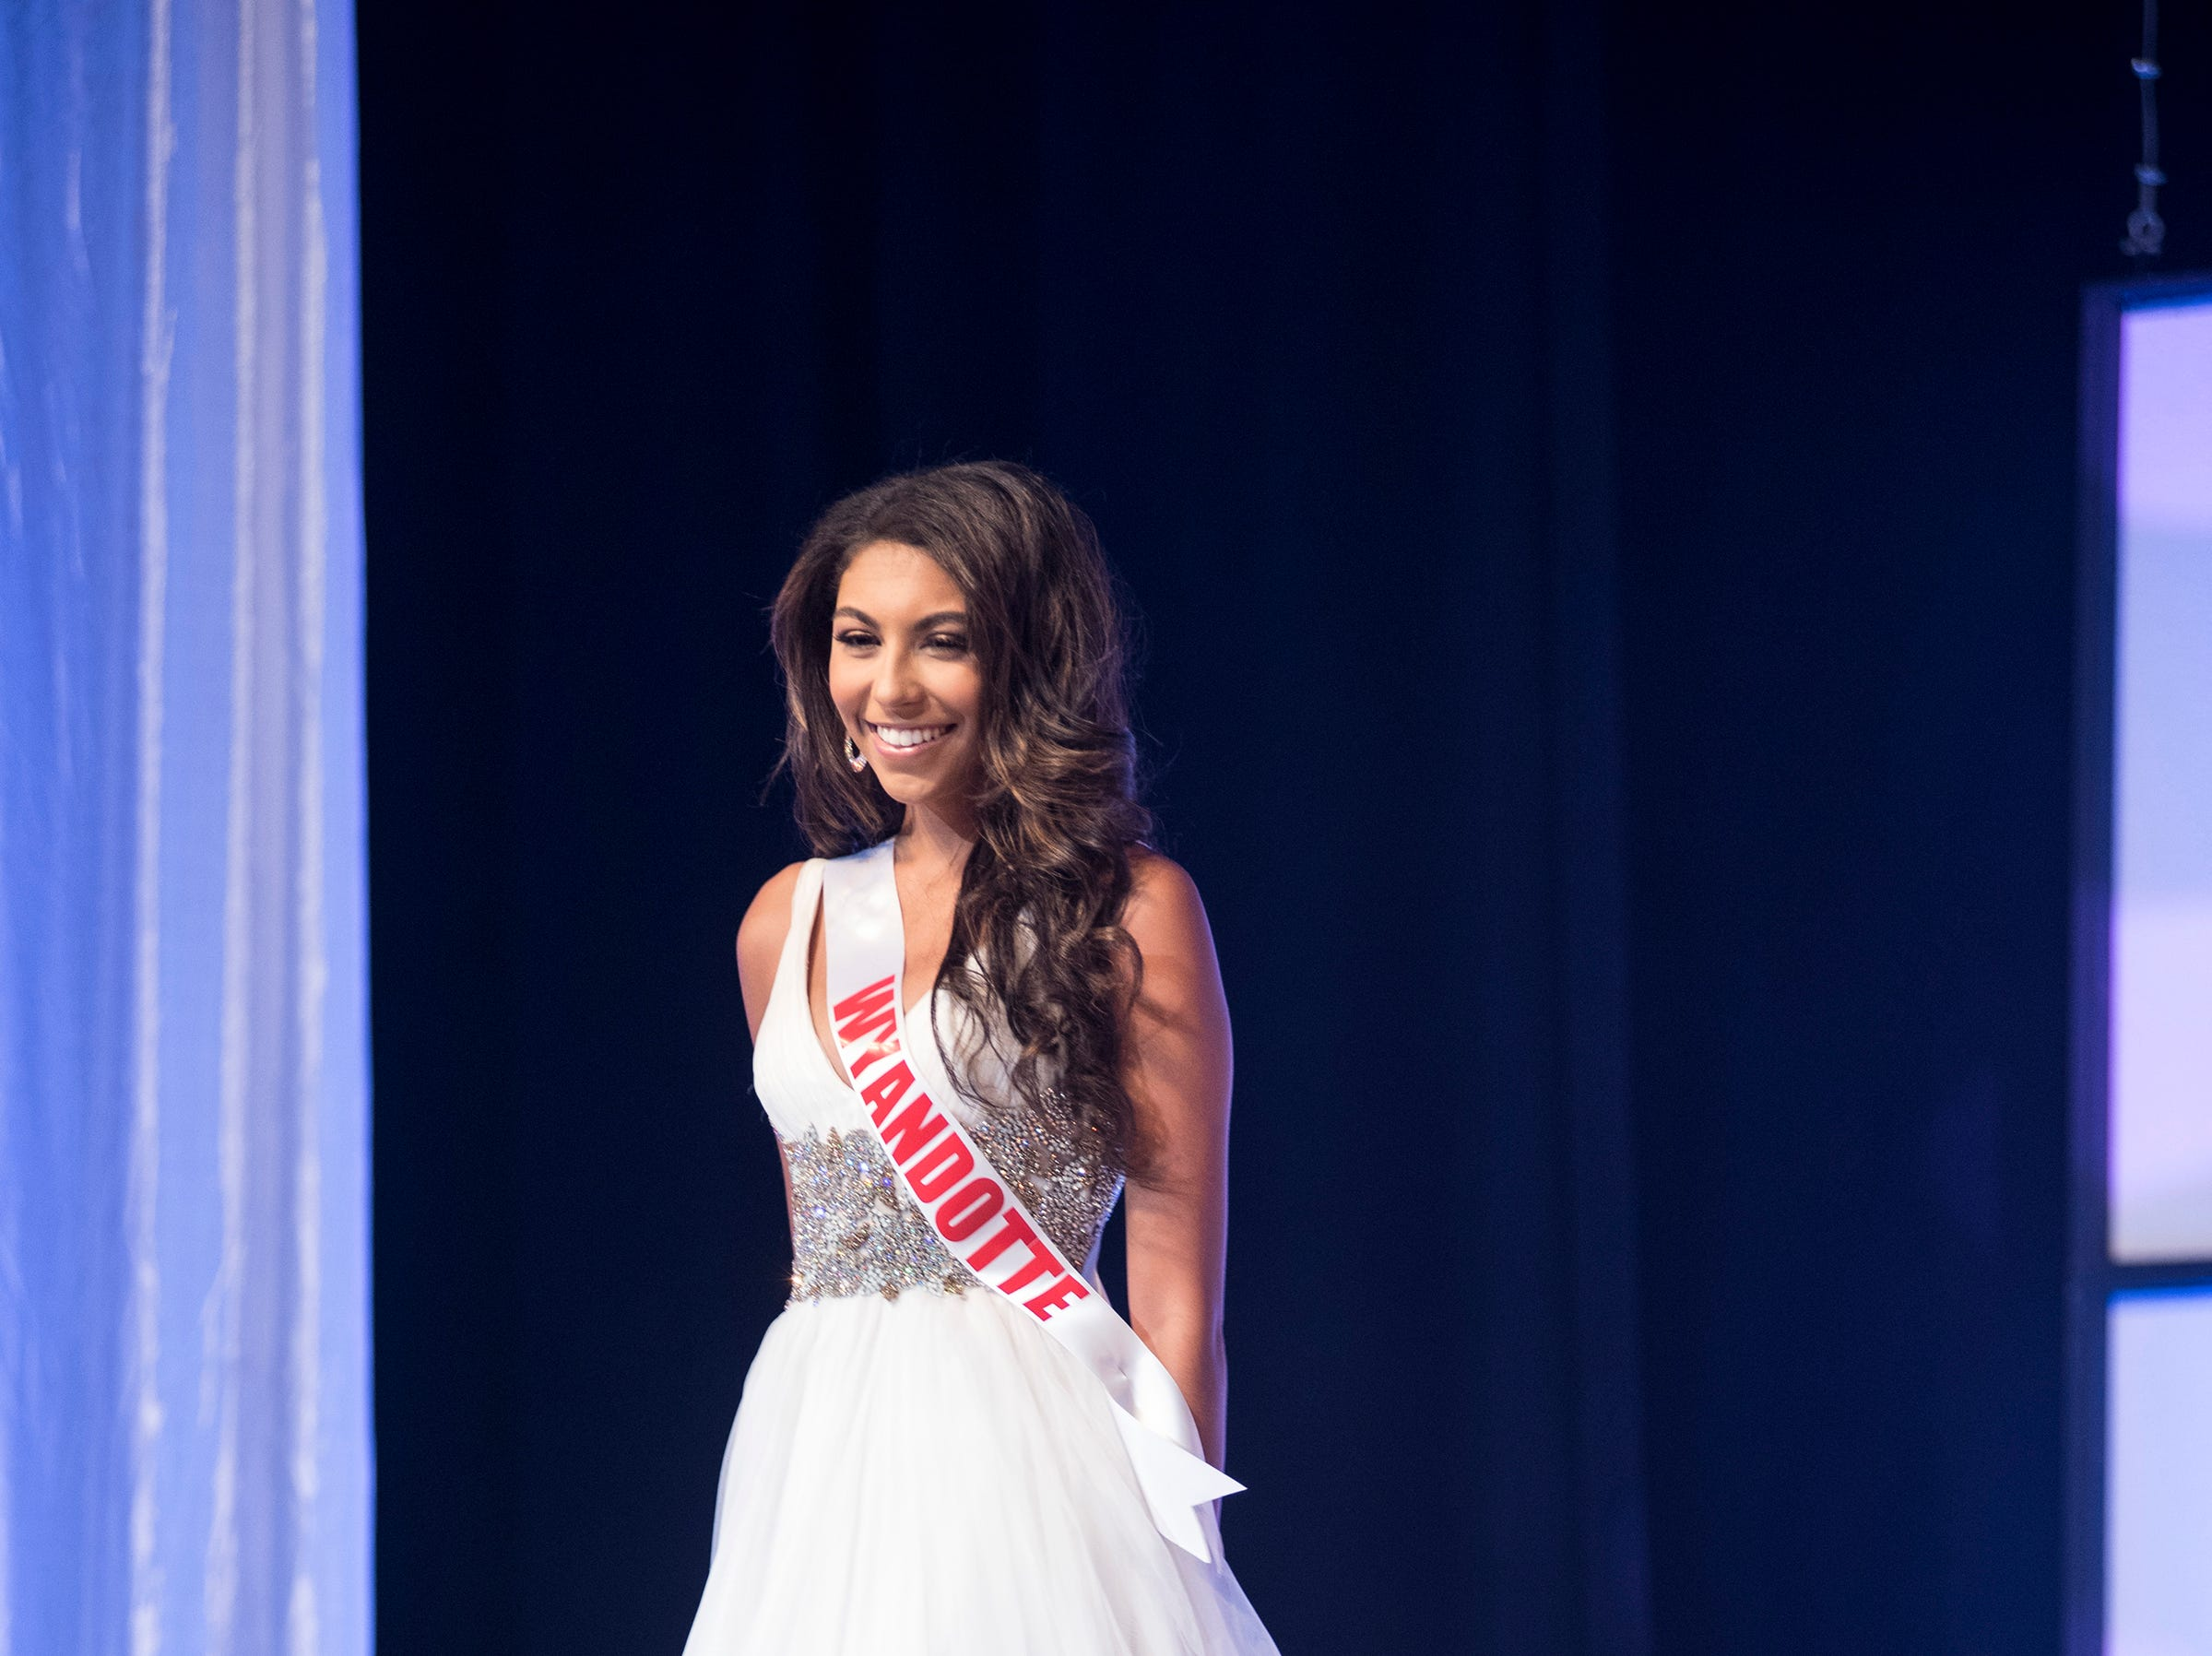 Miss Wyandotte Teen Alexis Fagan competes in formal wear during the semifinal round of Miss Michigan Teen USA Saturday, Sept. 22, 2018 at McMorran Theater.